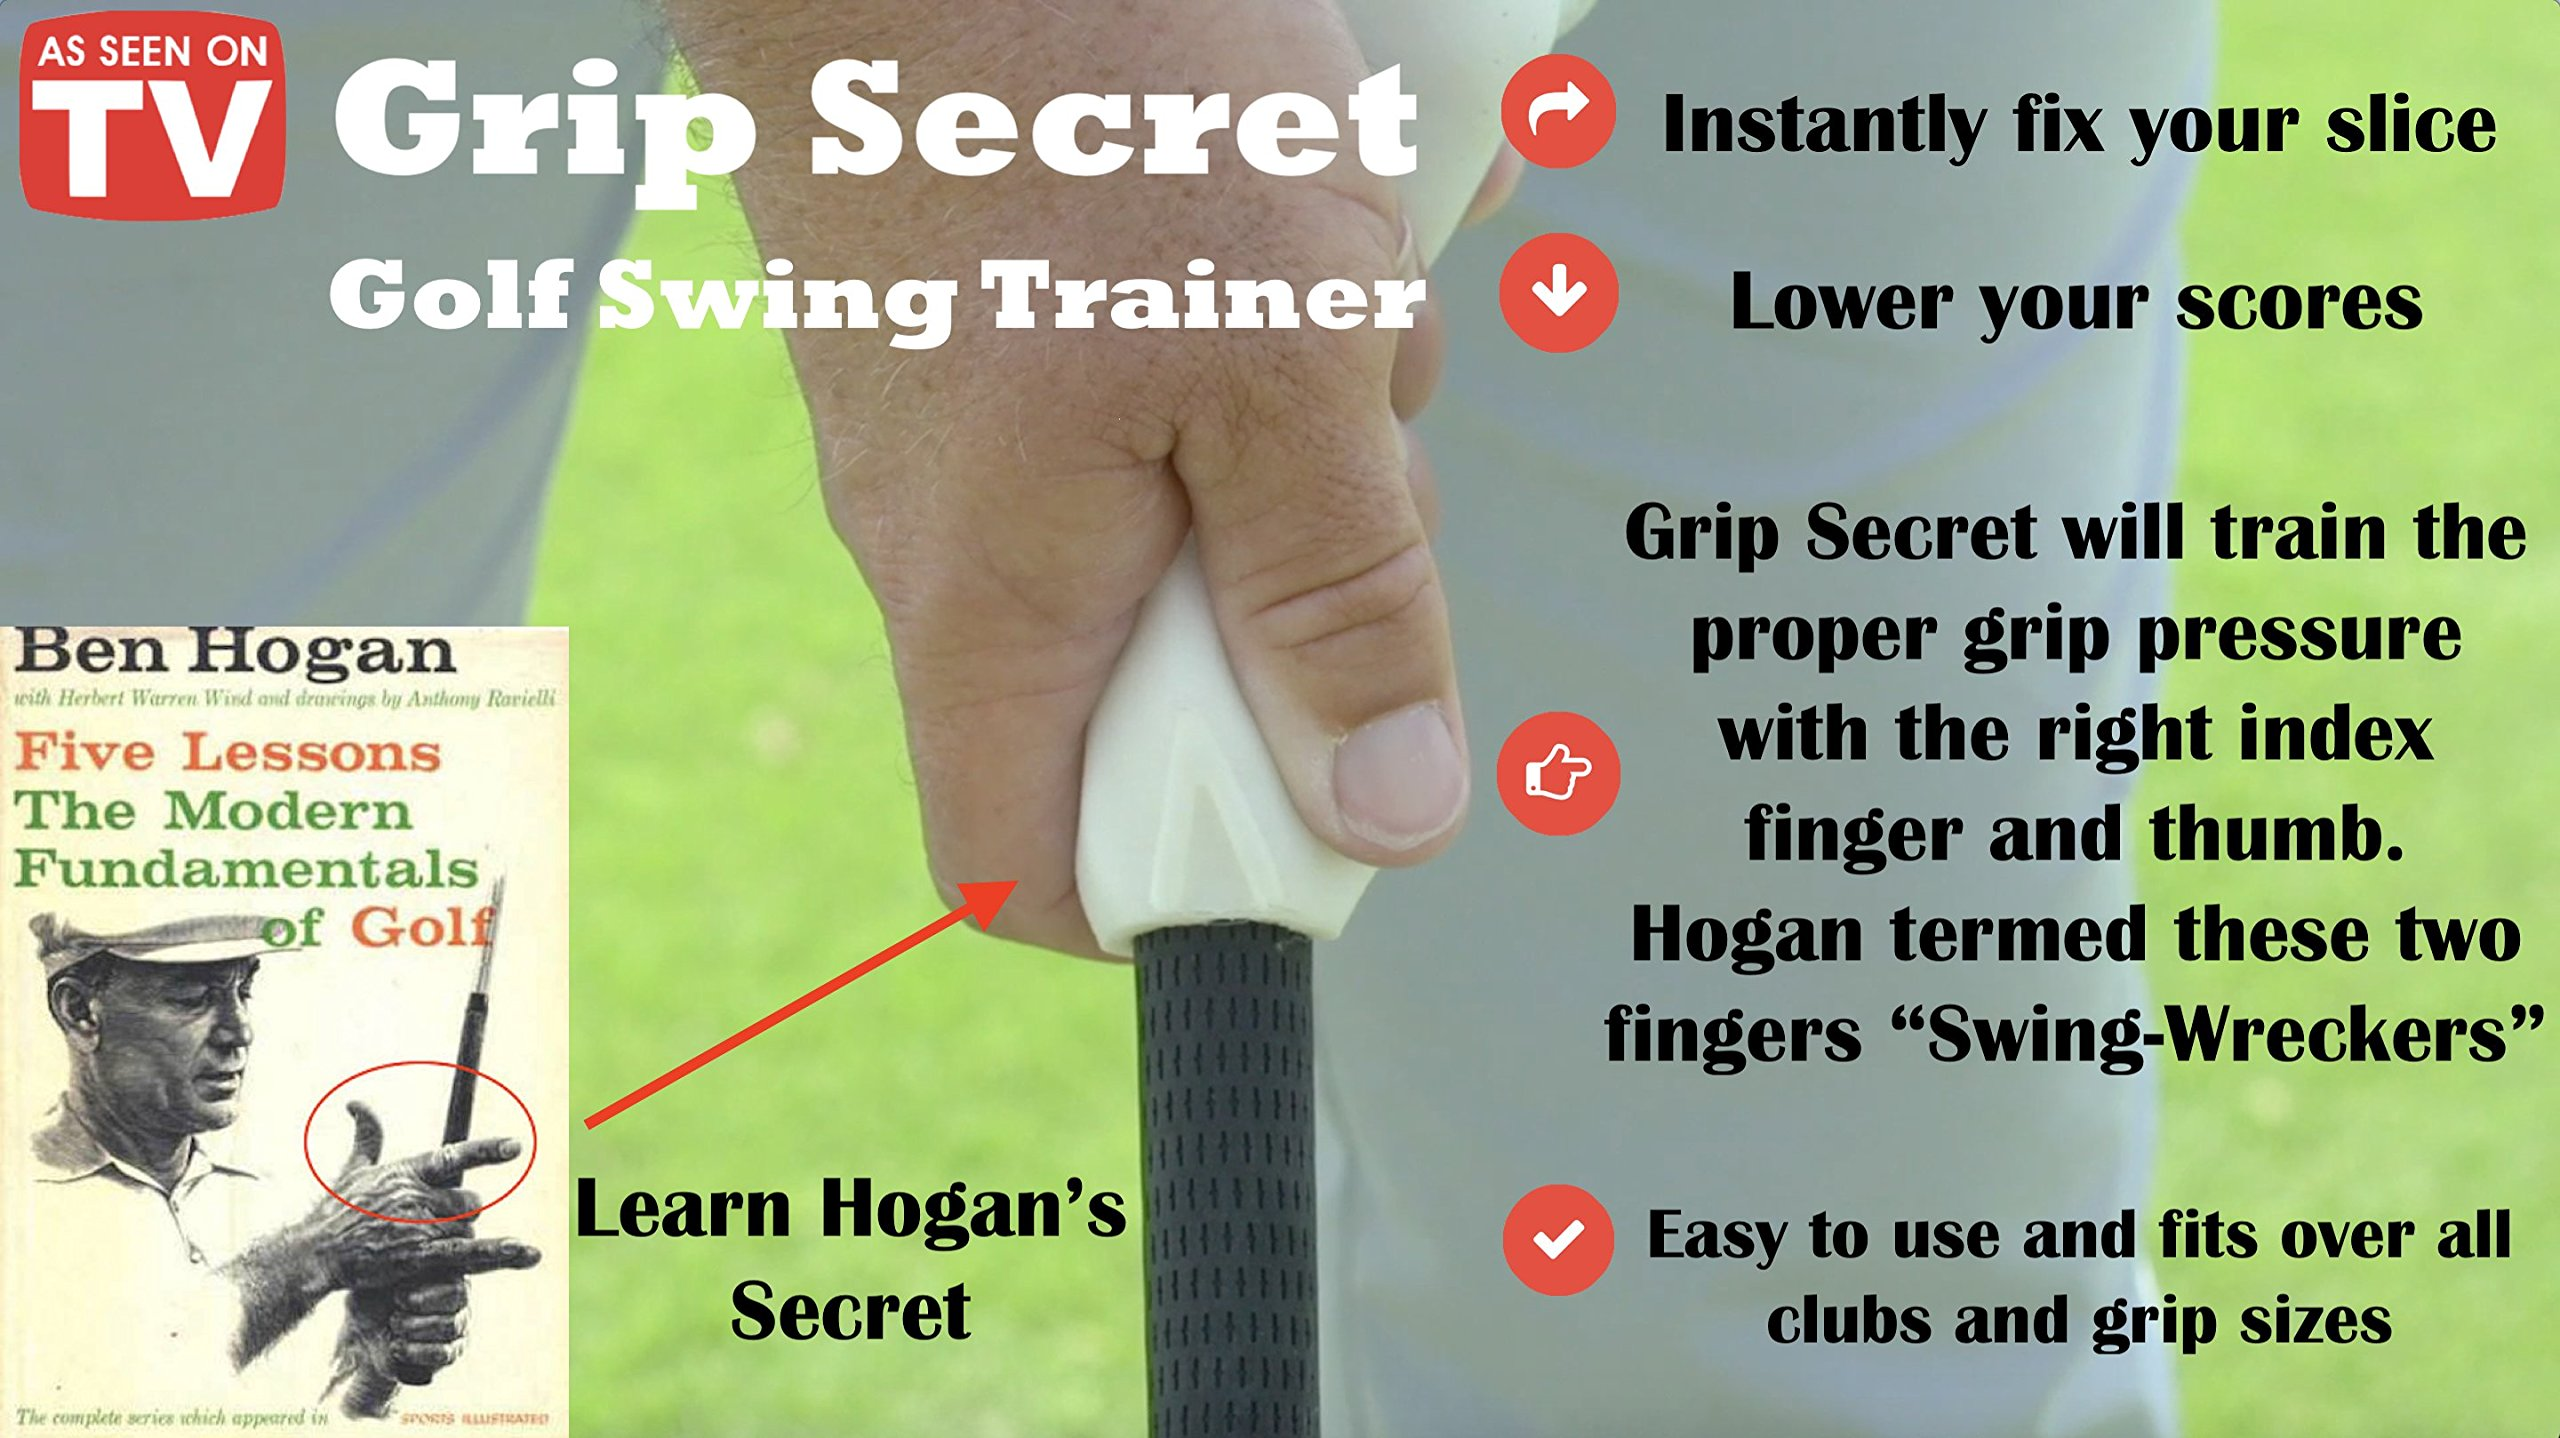 Grip Secret - Golf Swing Trainer/Golf Training Aid to Automatically and Instantly Improve Your Golf Game/Golf Swing